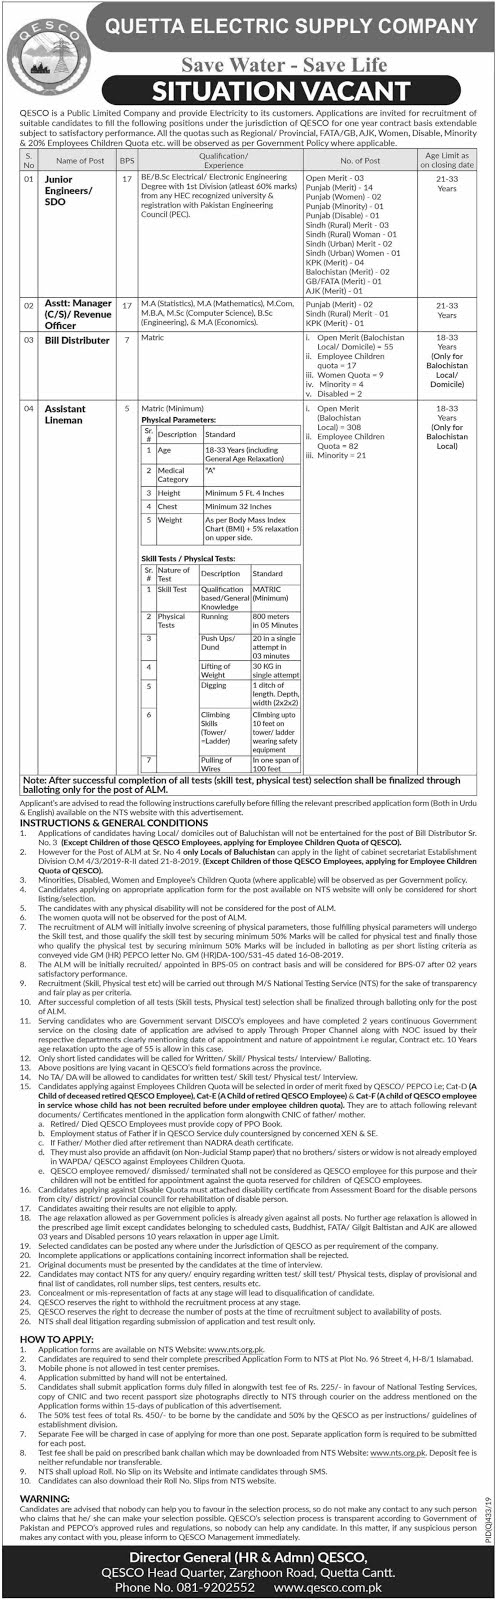 Quetta Electric Supply Company Jobs QESCO Jobs via NTS